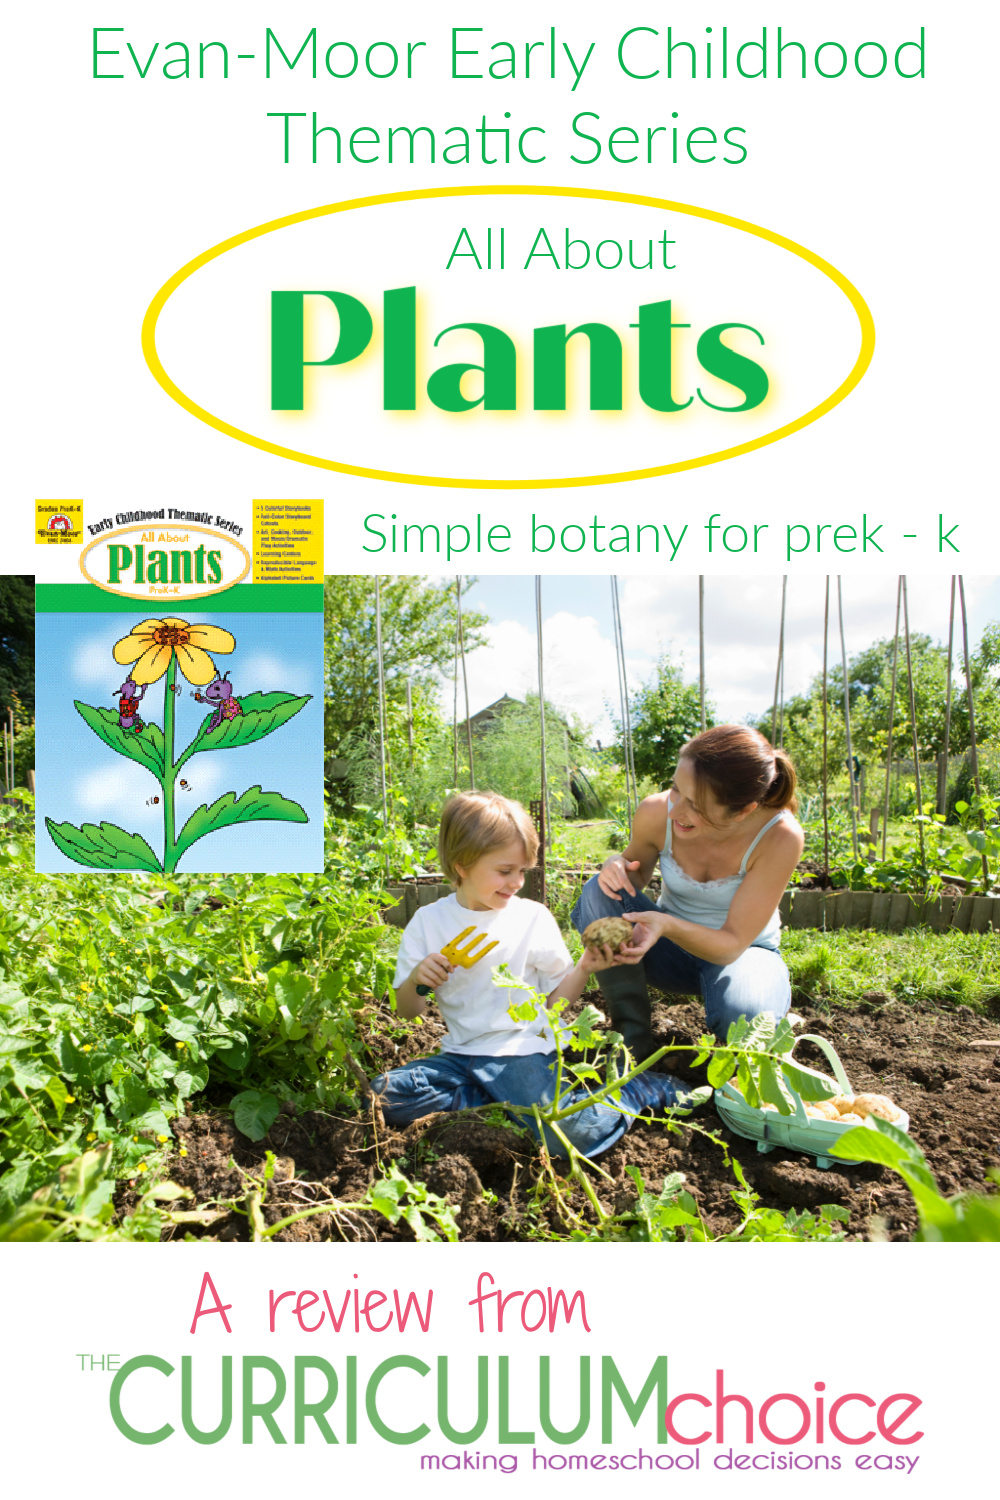 All About Plants is part of a series of science exploration books by Evan-Moor. It includes full color stories and theme related activities for kids in preK-K. A review from The Curriculum Choice